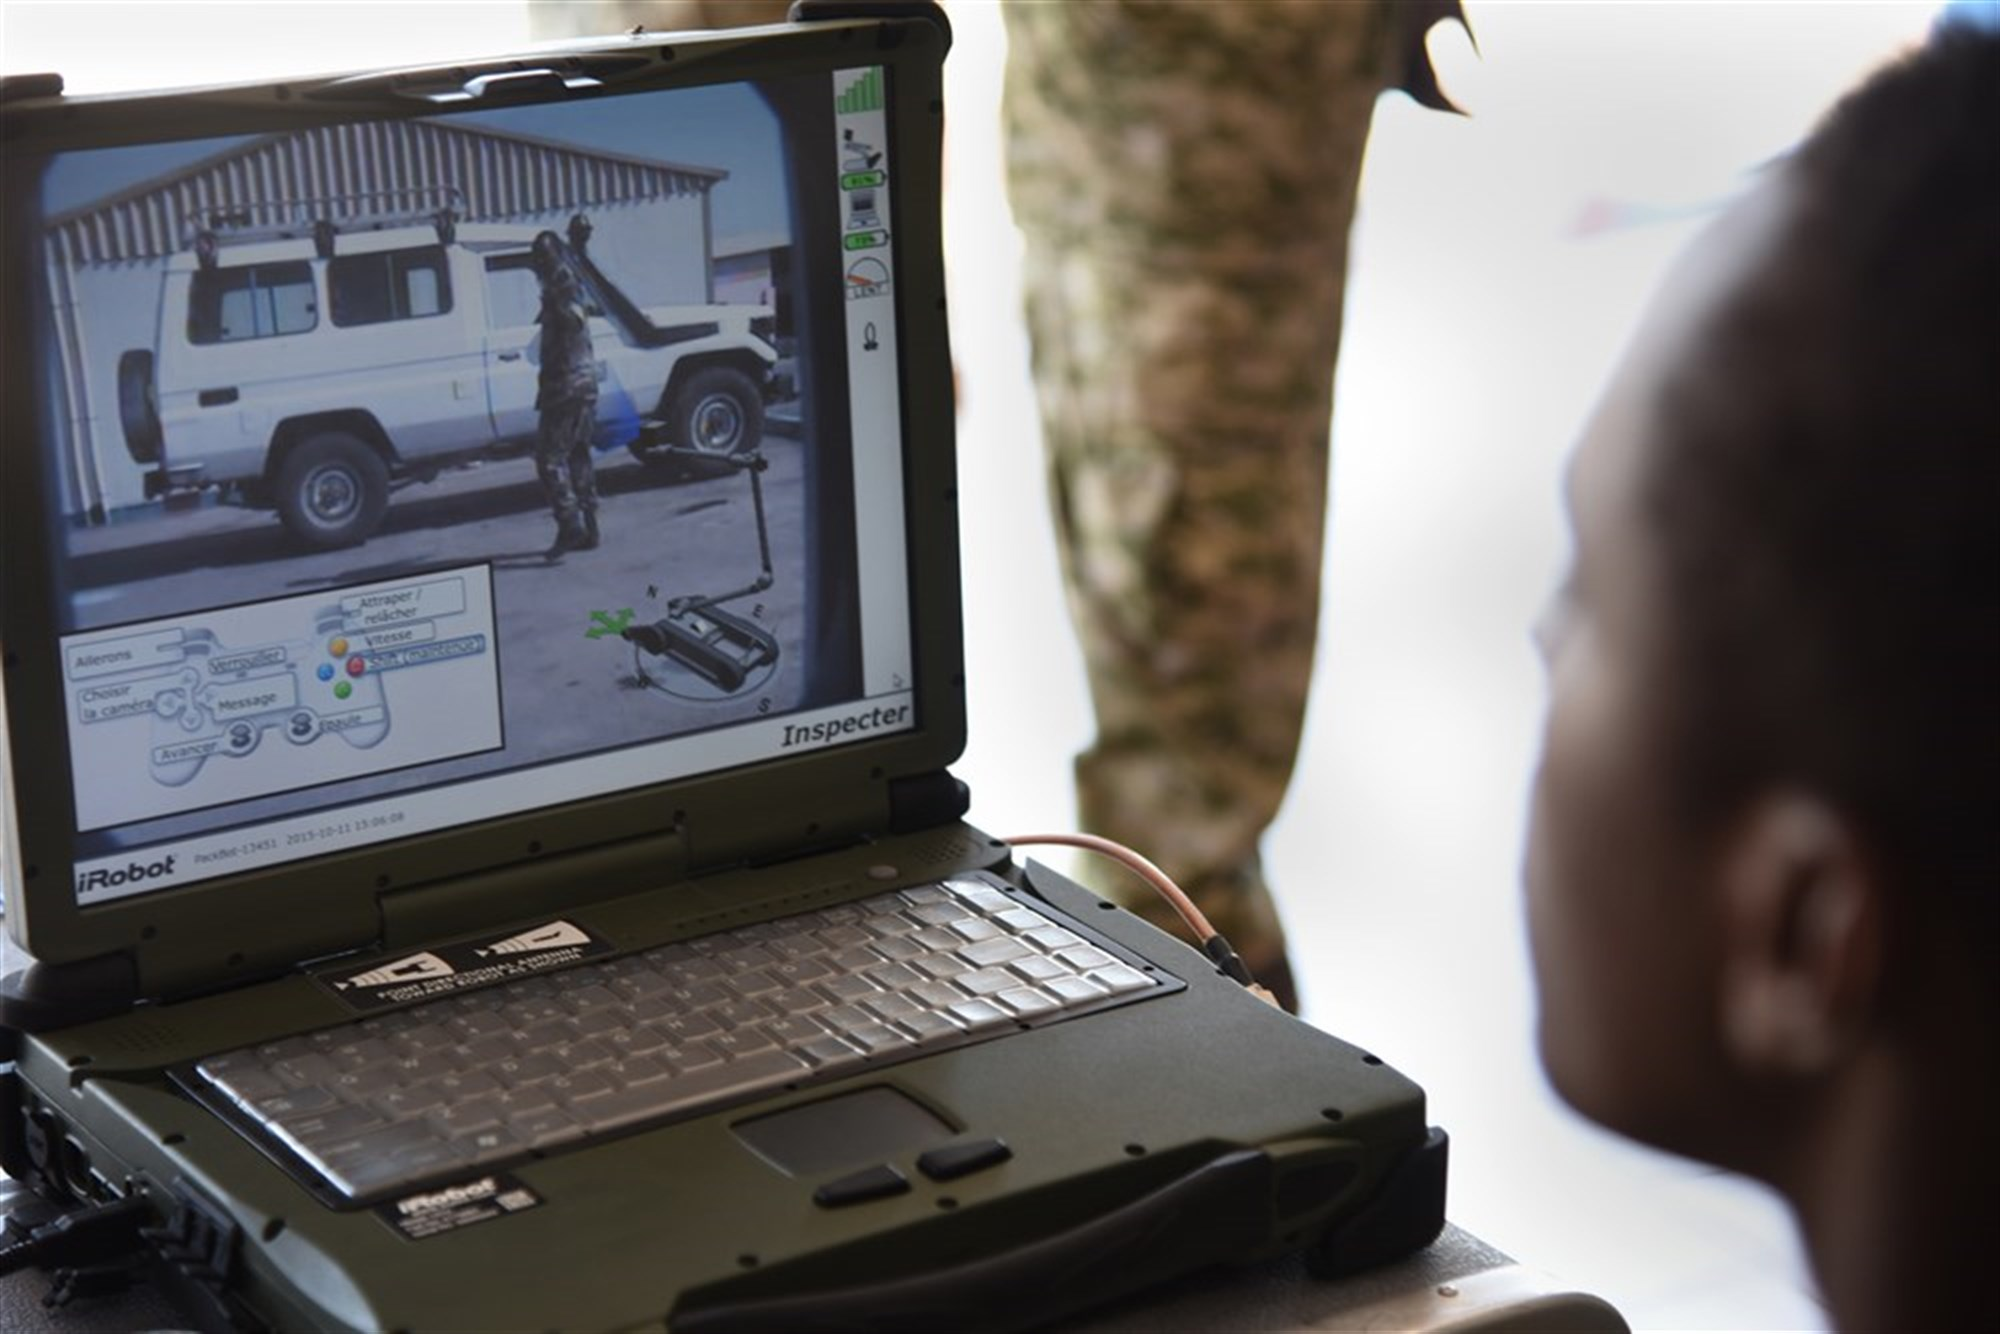 Members of the Djibouti Armed Forces (FAD) monitor a computer transmitting video from the iRobot 510 Packbot Oct. 12, 2015, in Djibouti. The robot can perform bomb disposal, surveillance and reconnaissance operations.